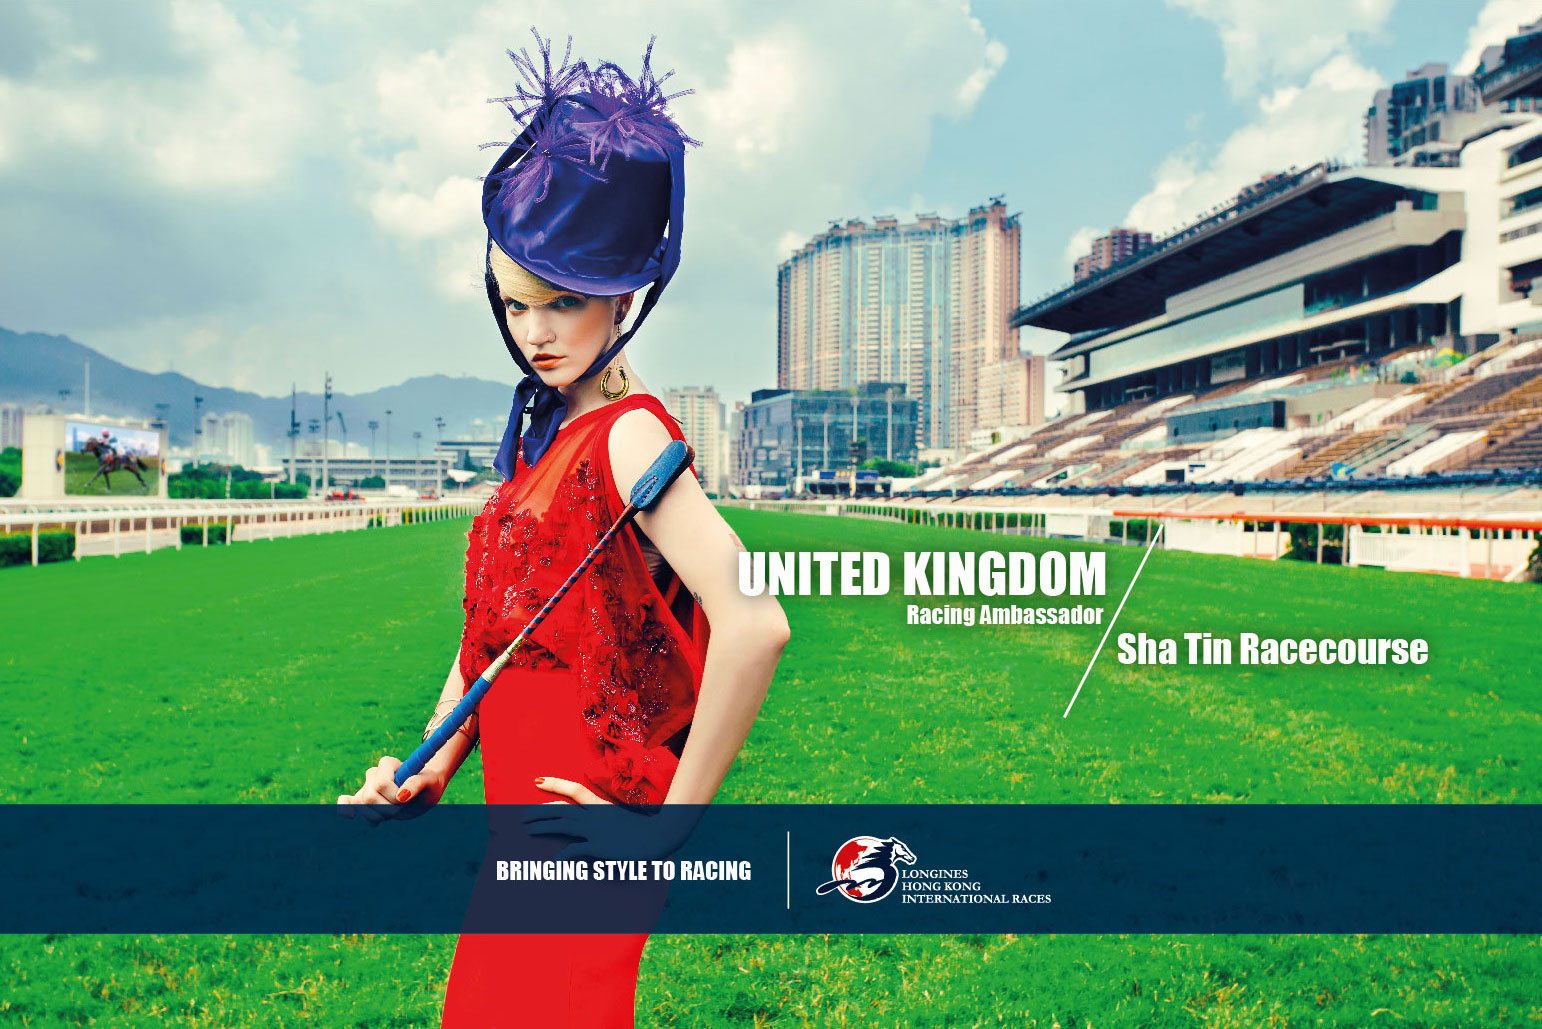 United-Kingdom-Racing-Ambassador---Shatin-Racecourse-Turf